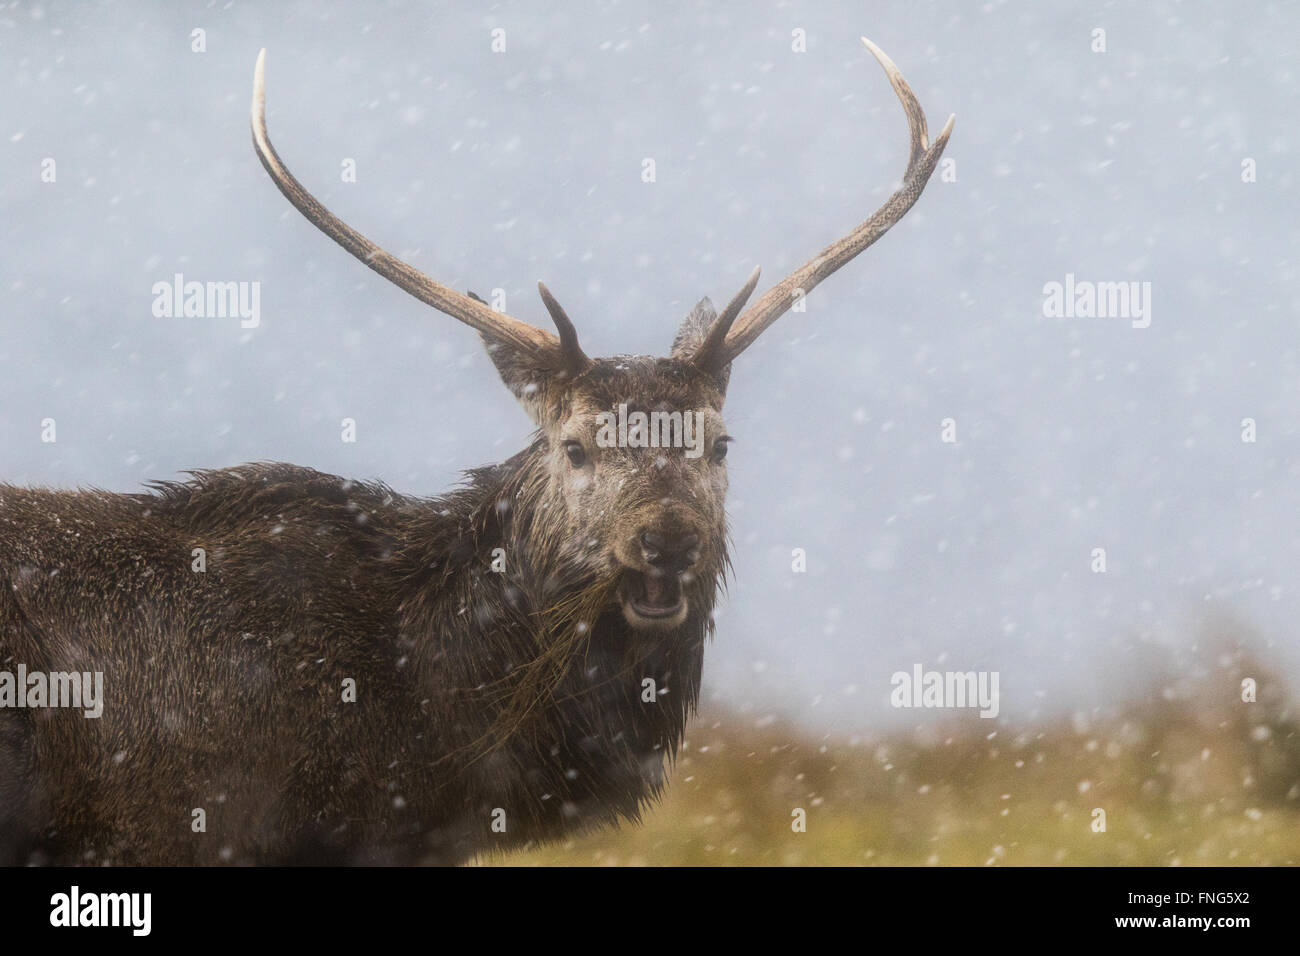 Red Deer (Cervus elaphus) stag eating dead grass in a snowstorm - Stock Image